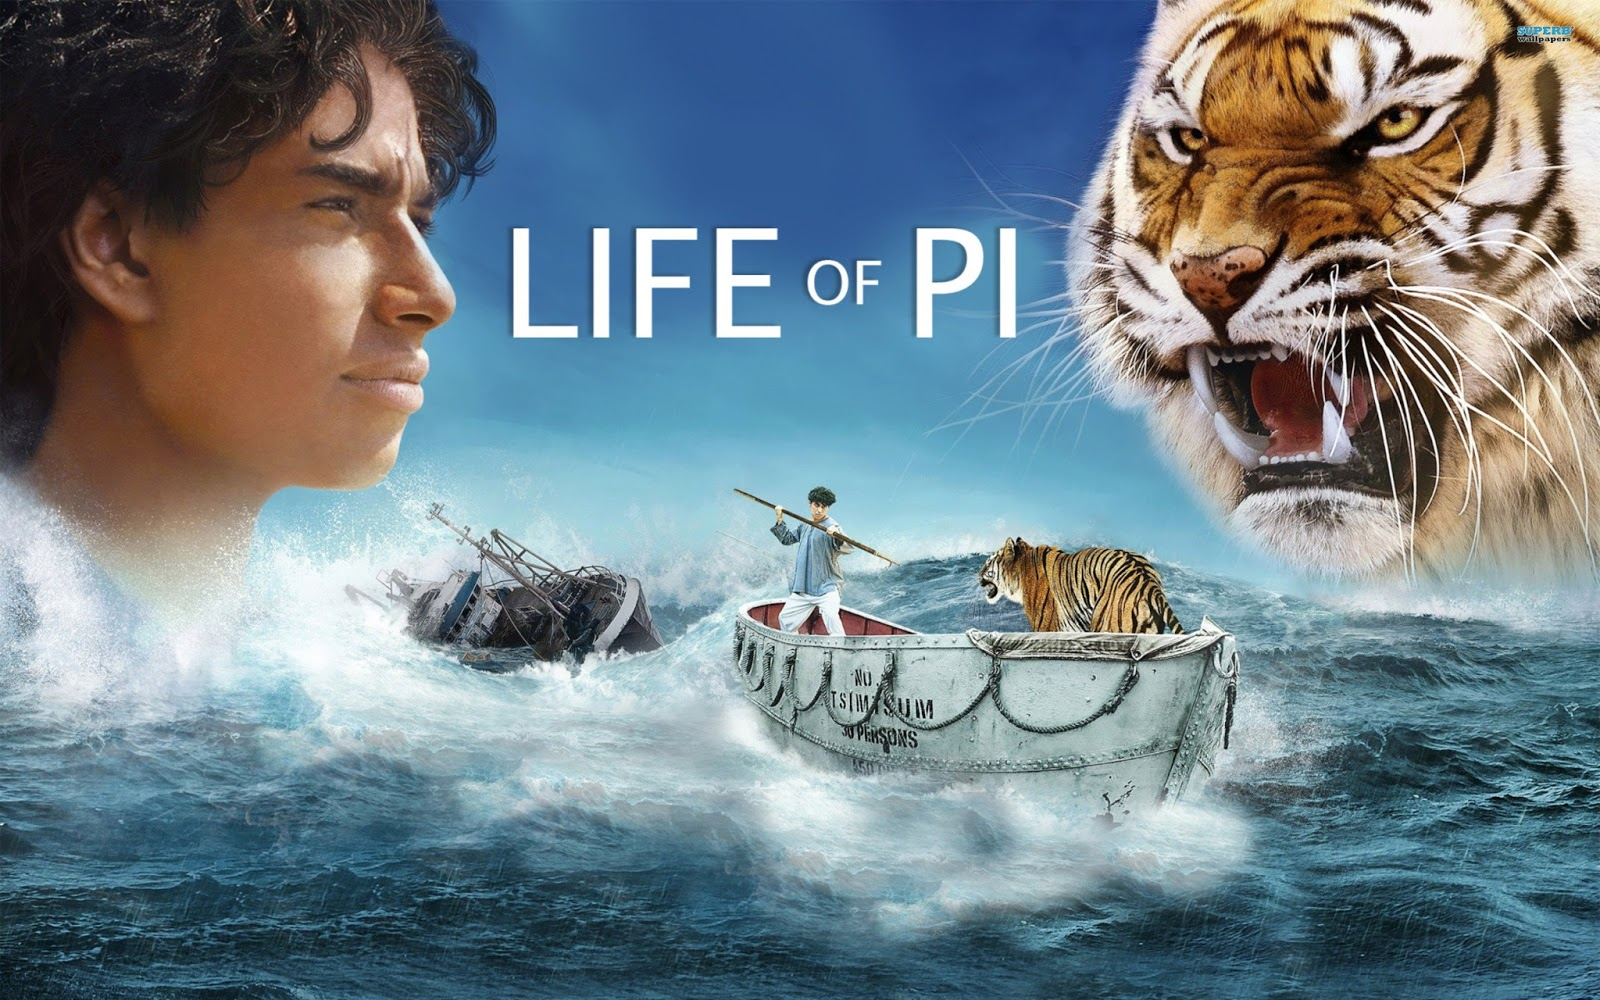 Buy life of pi adventure movie muddlex for Life of pi cast